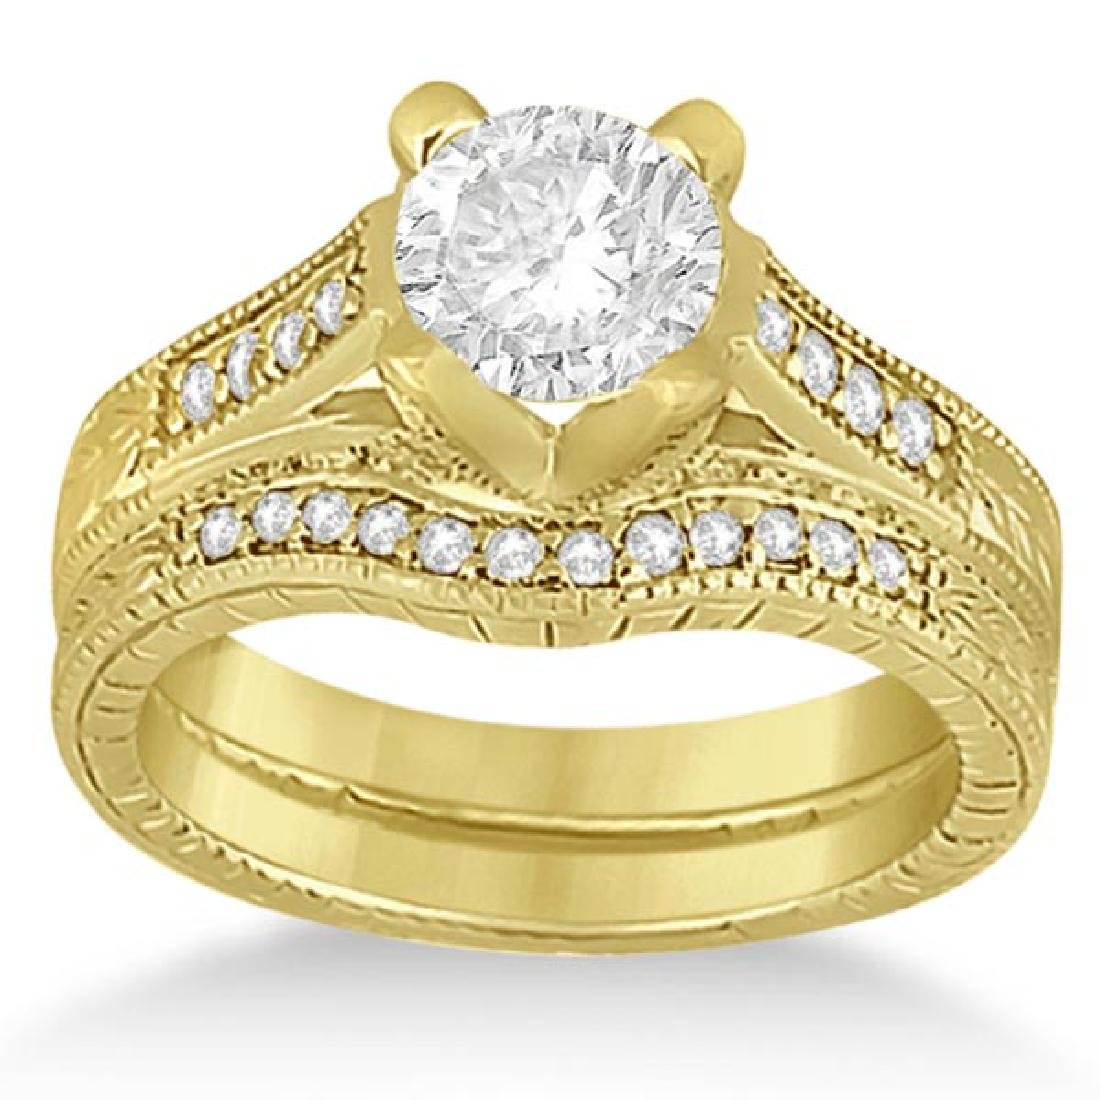 Antique Style Engagement Ring Set 18k Yellow Gold 1.10